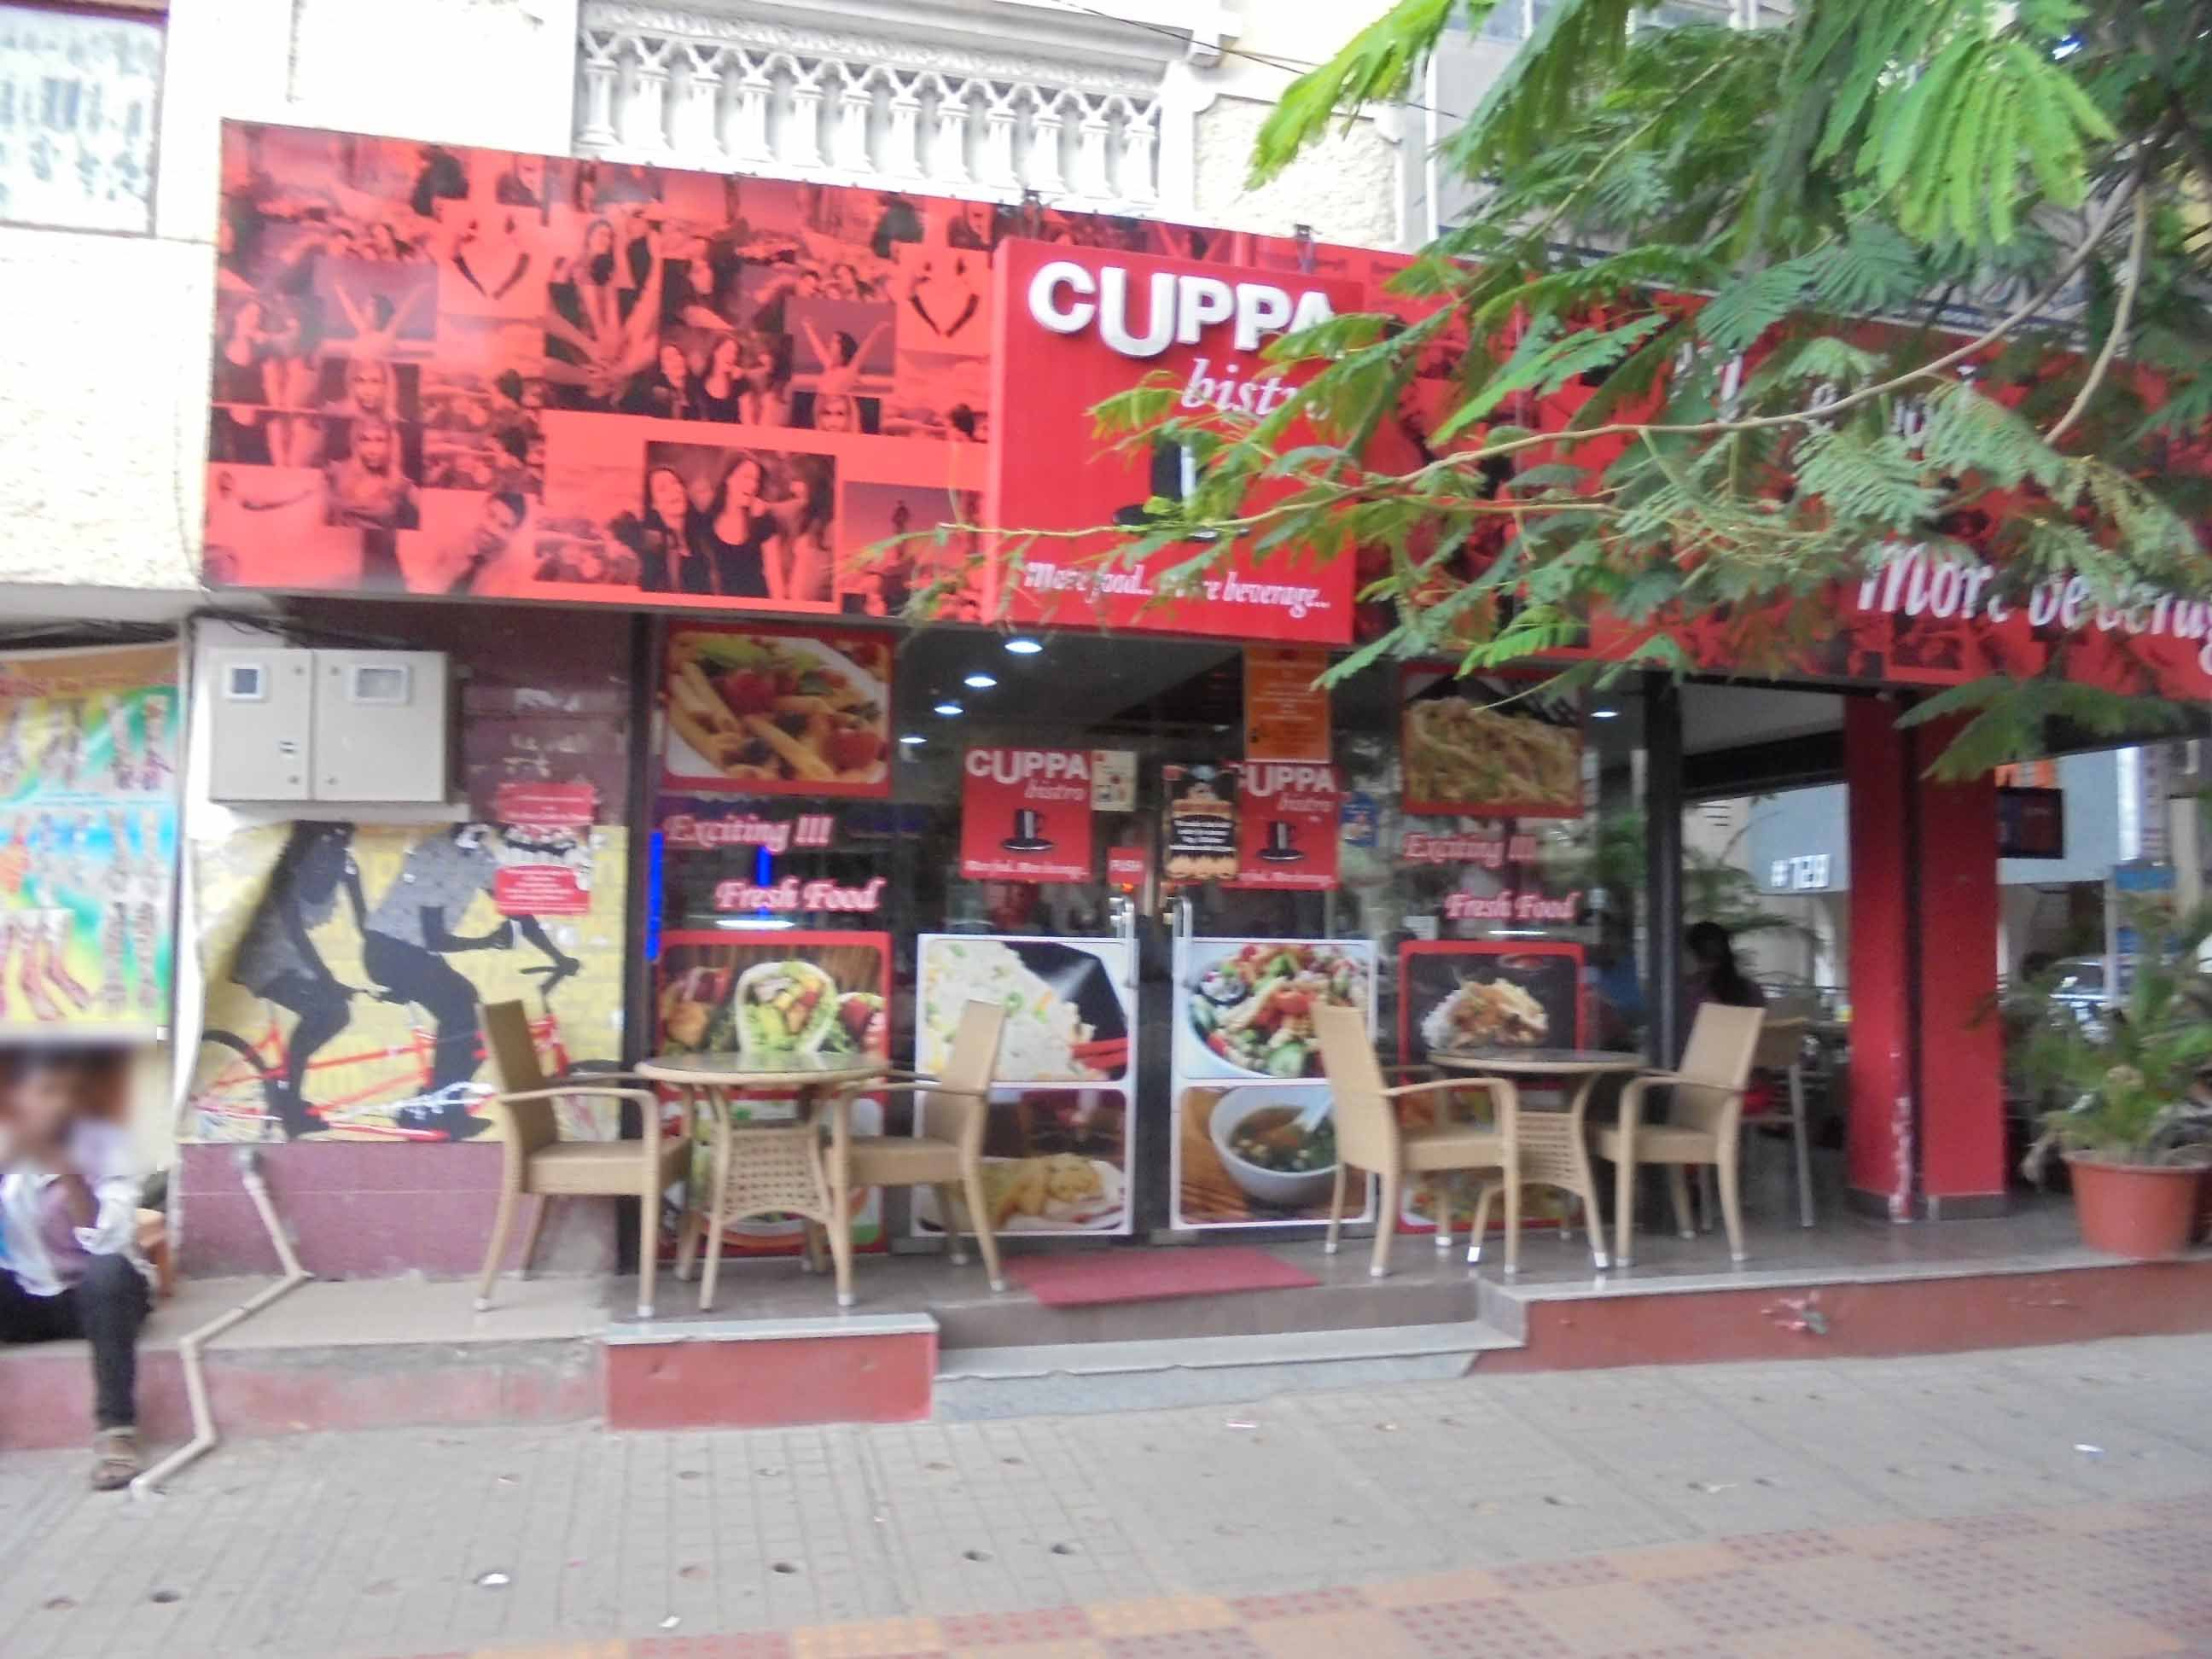 Cuppa btm layout bangalore menu photos images and